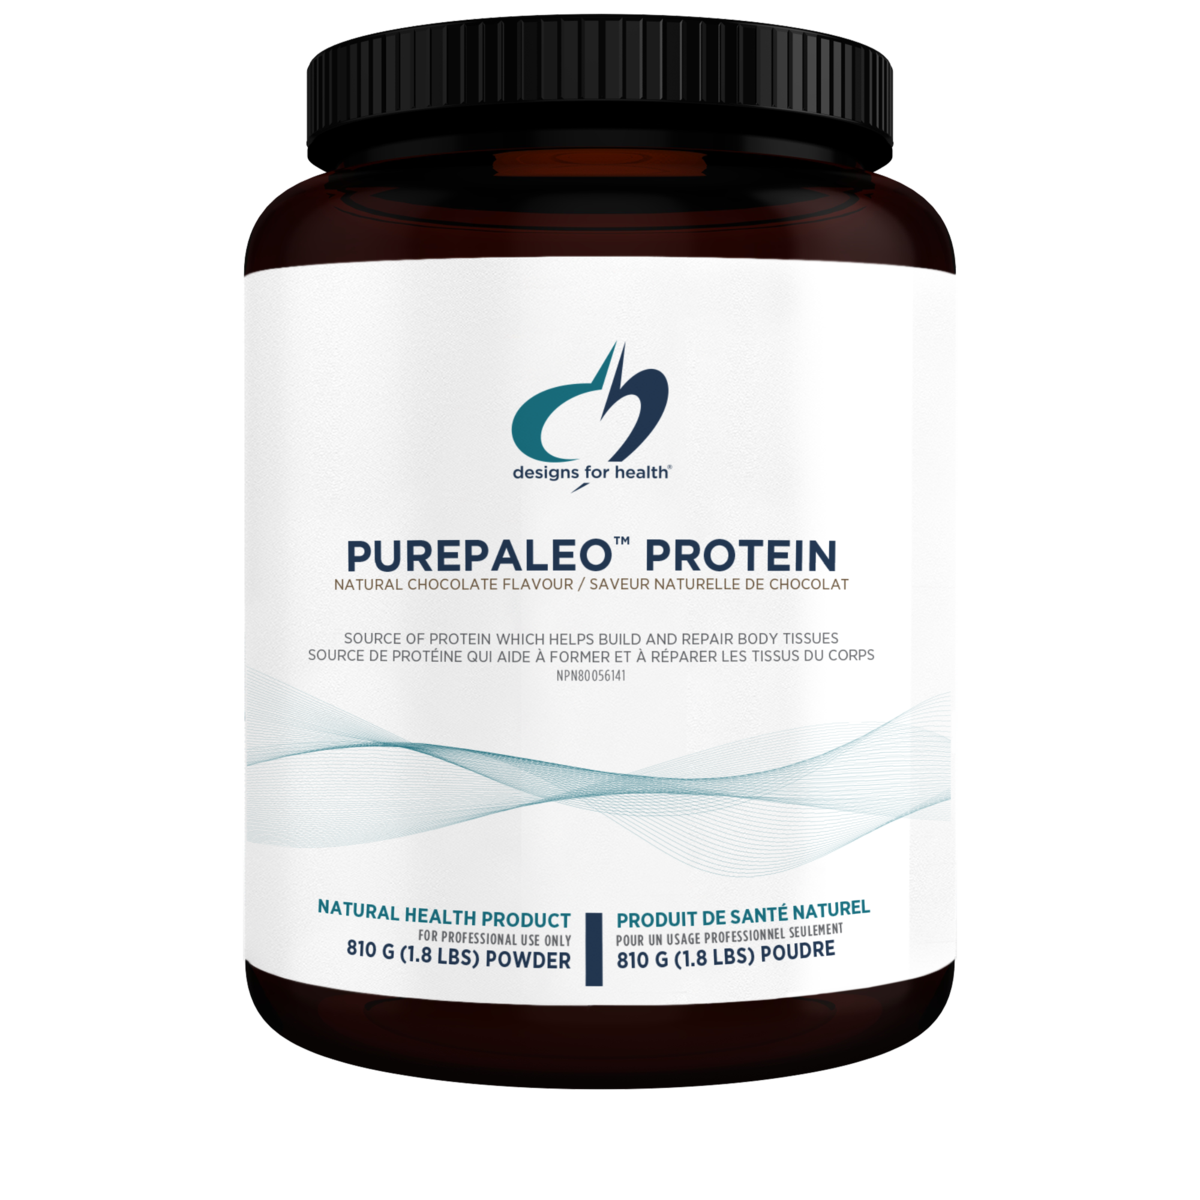 Designs for Health PurePaleo Protein - Chocolate - 810 grams (1.8 lbs)